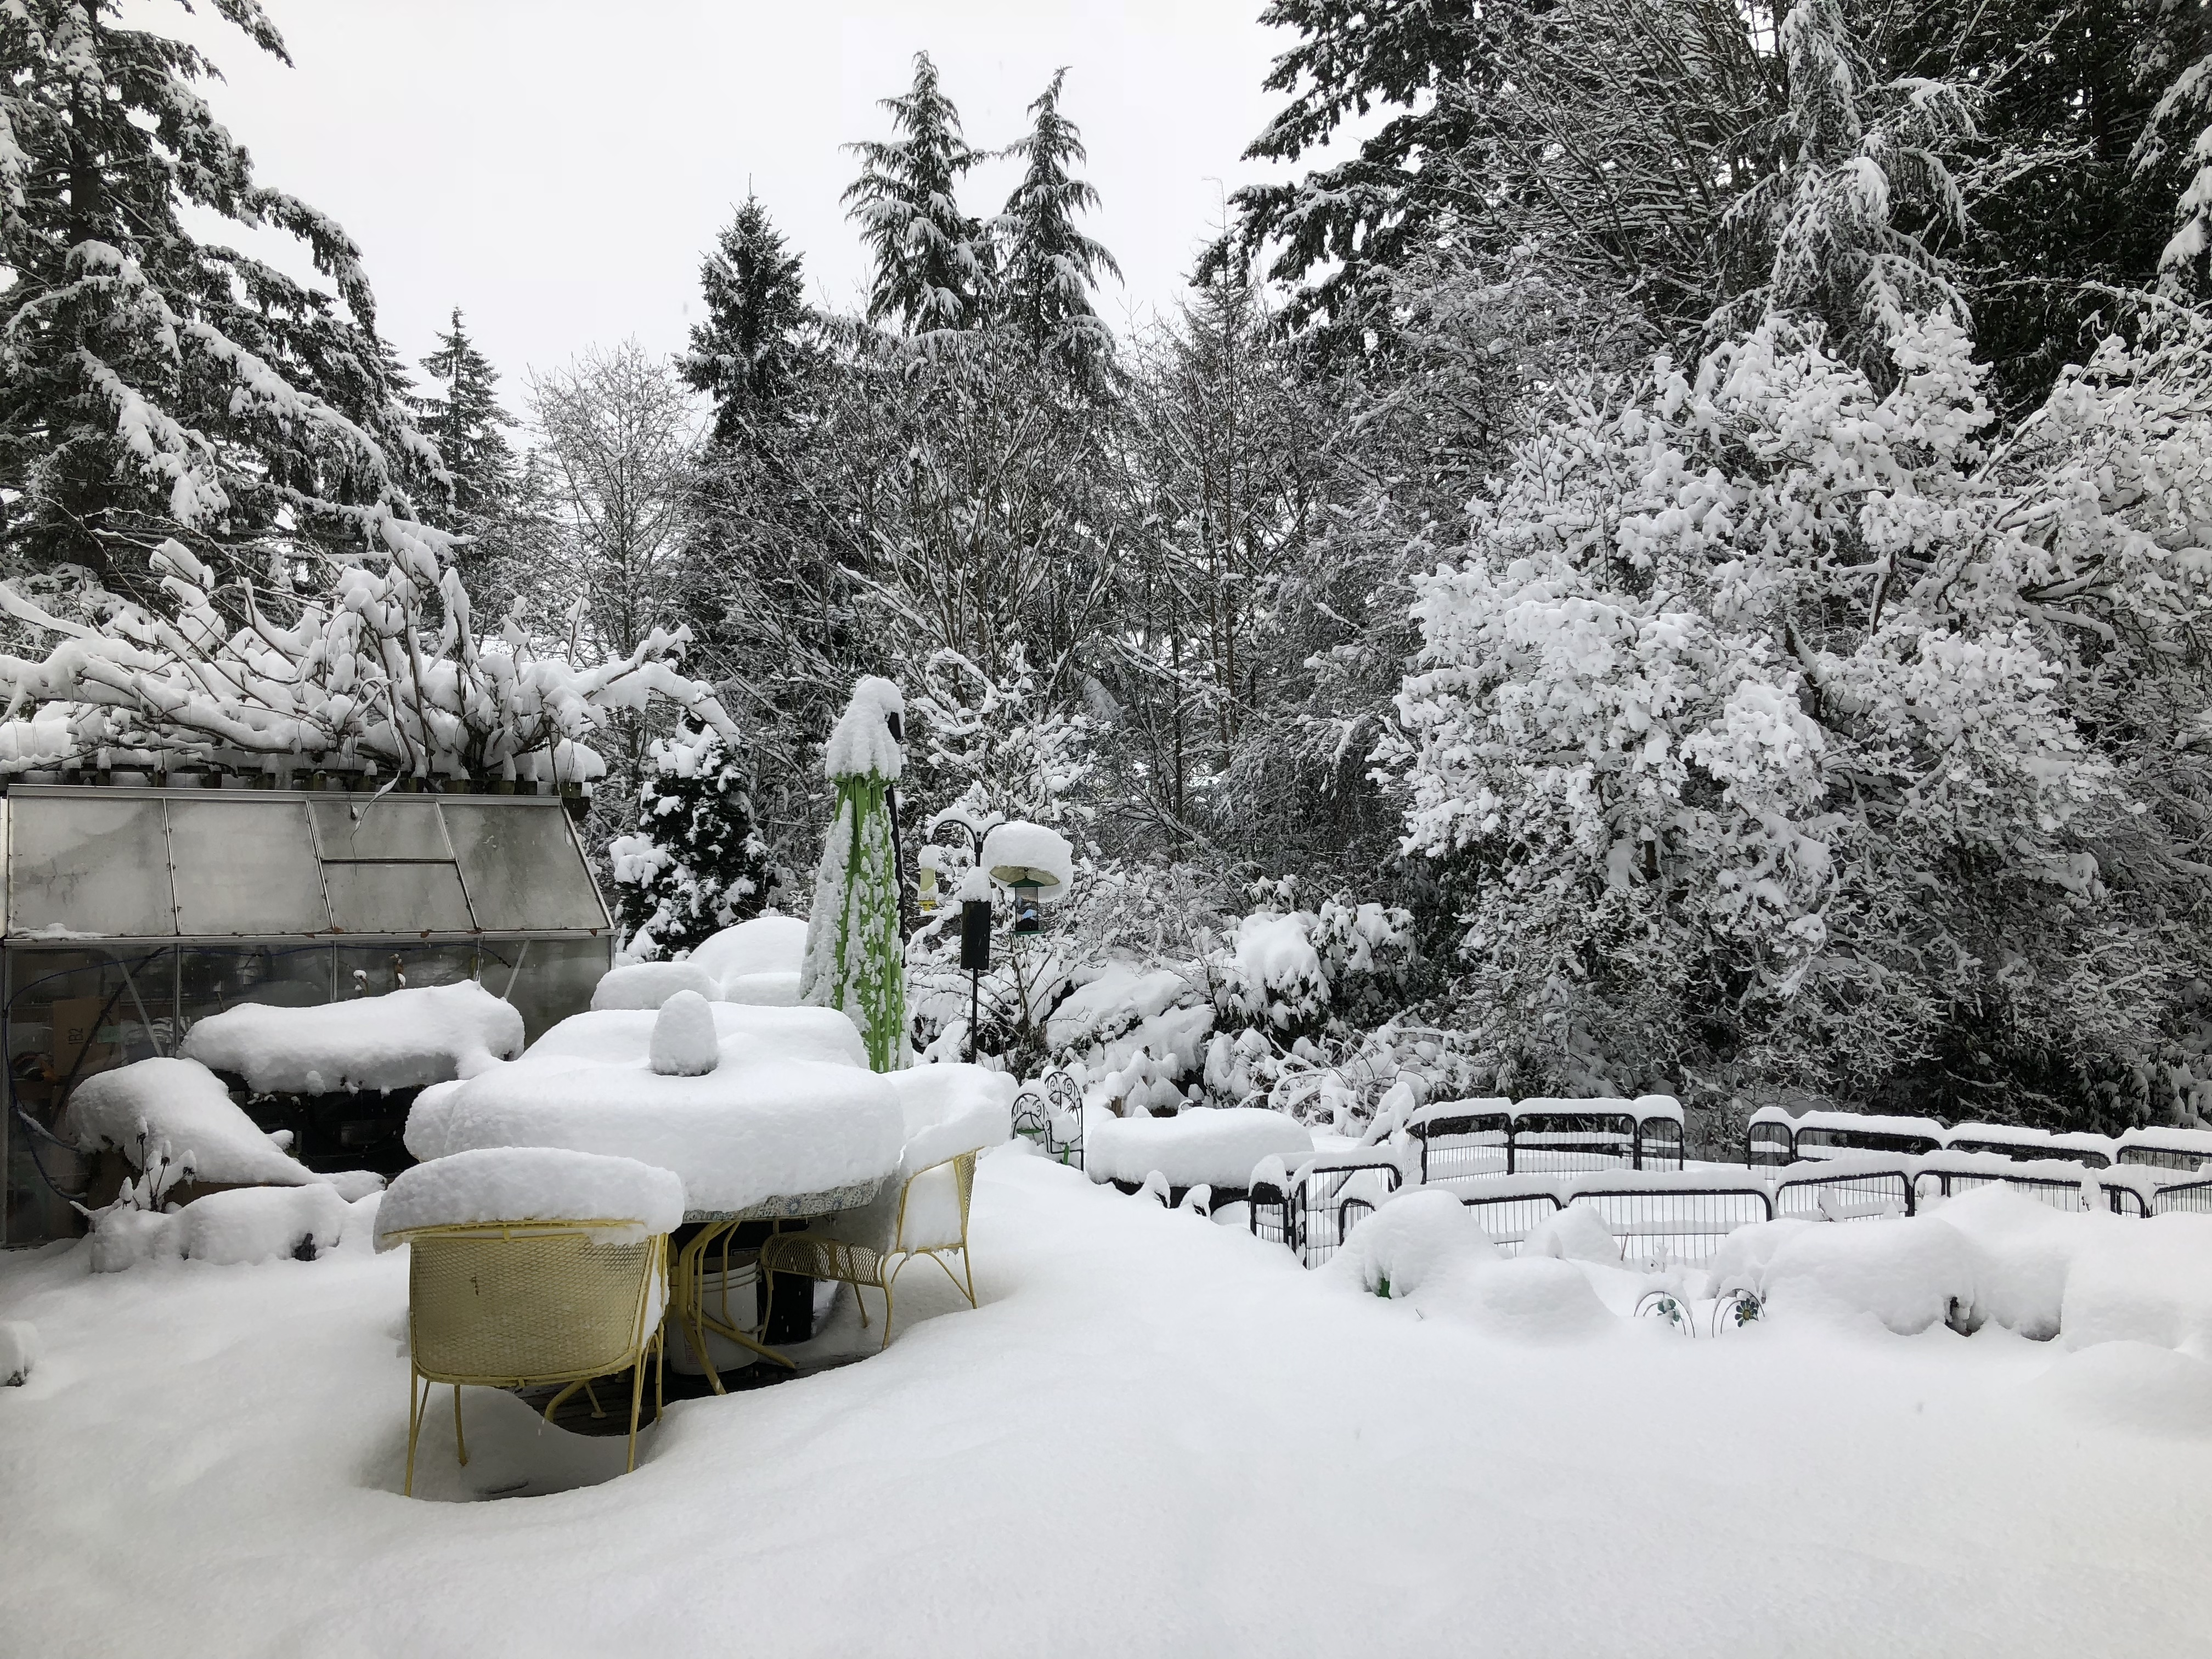 A snow-covered deck with a patio table and fence rail all buried by untouched snow at least one-foot deep. The background is filled with tall conifers all covered in heavy snow.